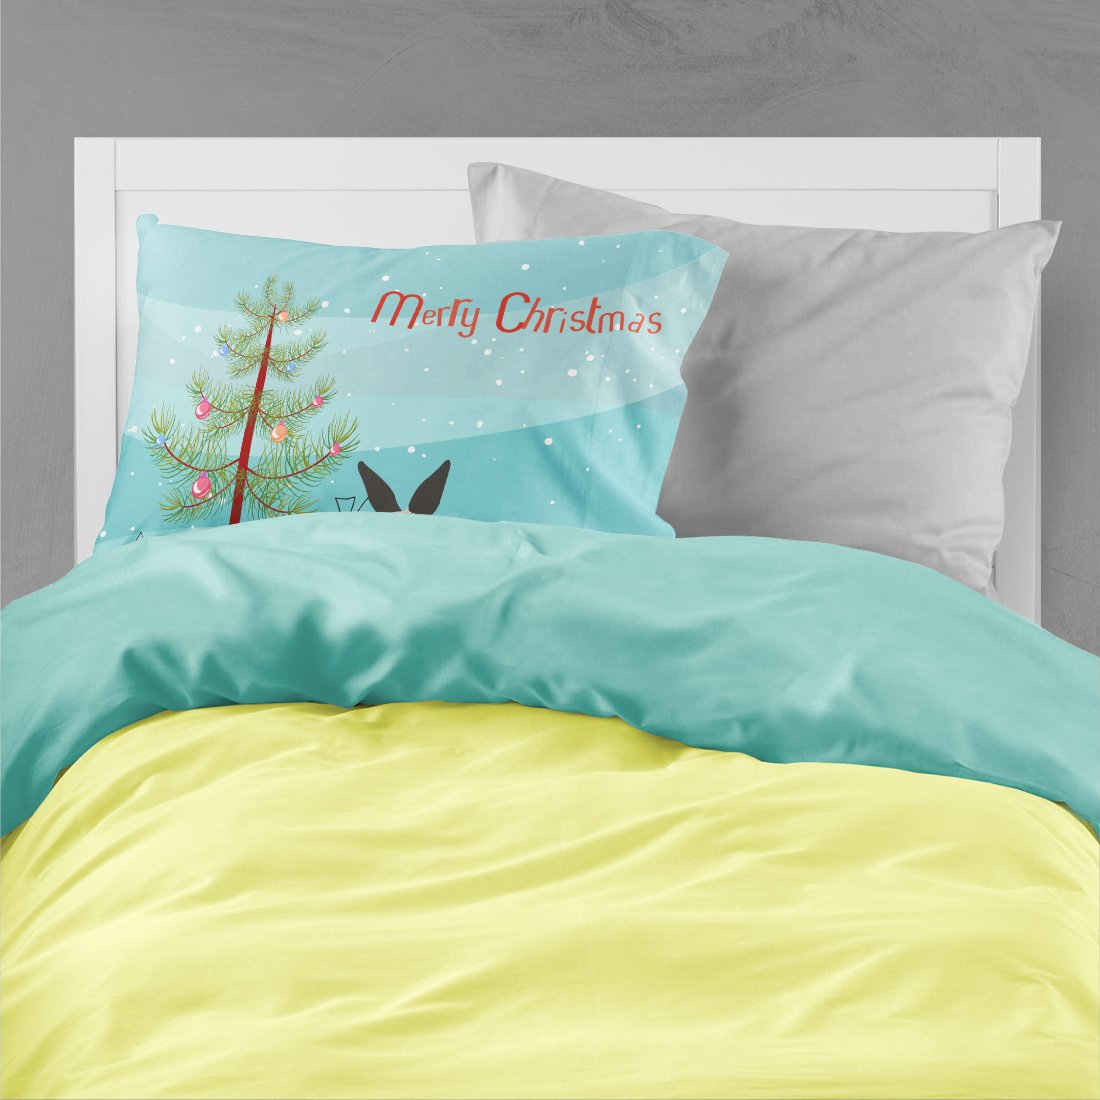 California White Rabbit Christmas Fabric Standard Pillowcase BB9334PILLOWCASE by Caroline's Treasures